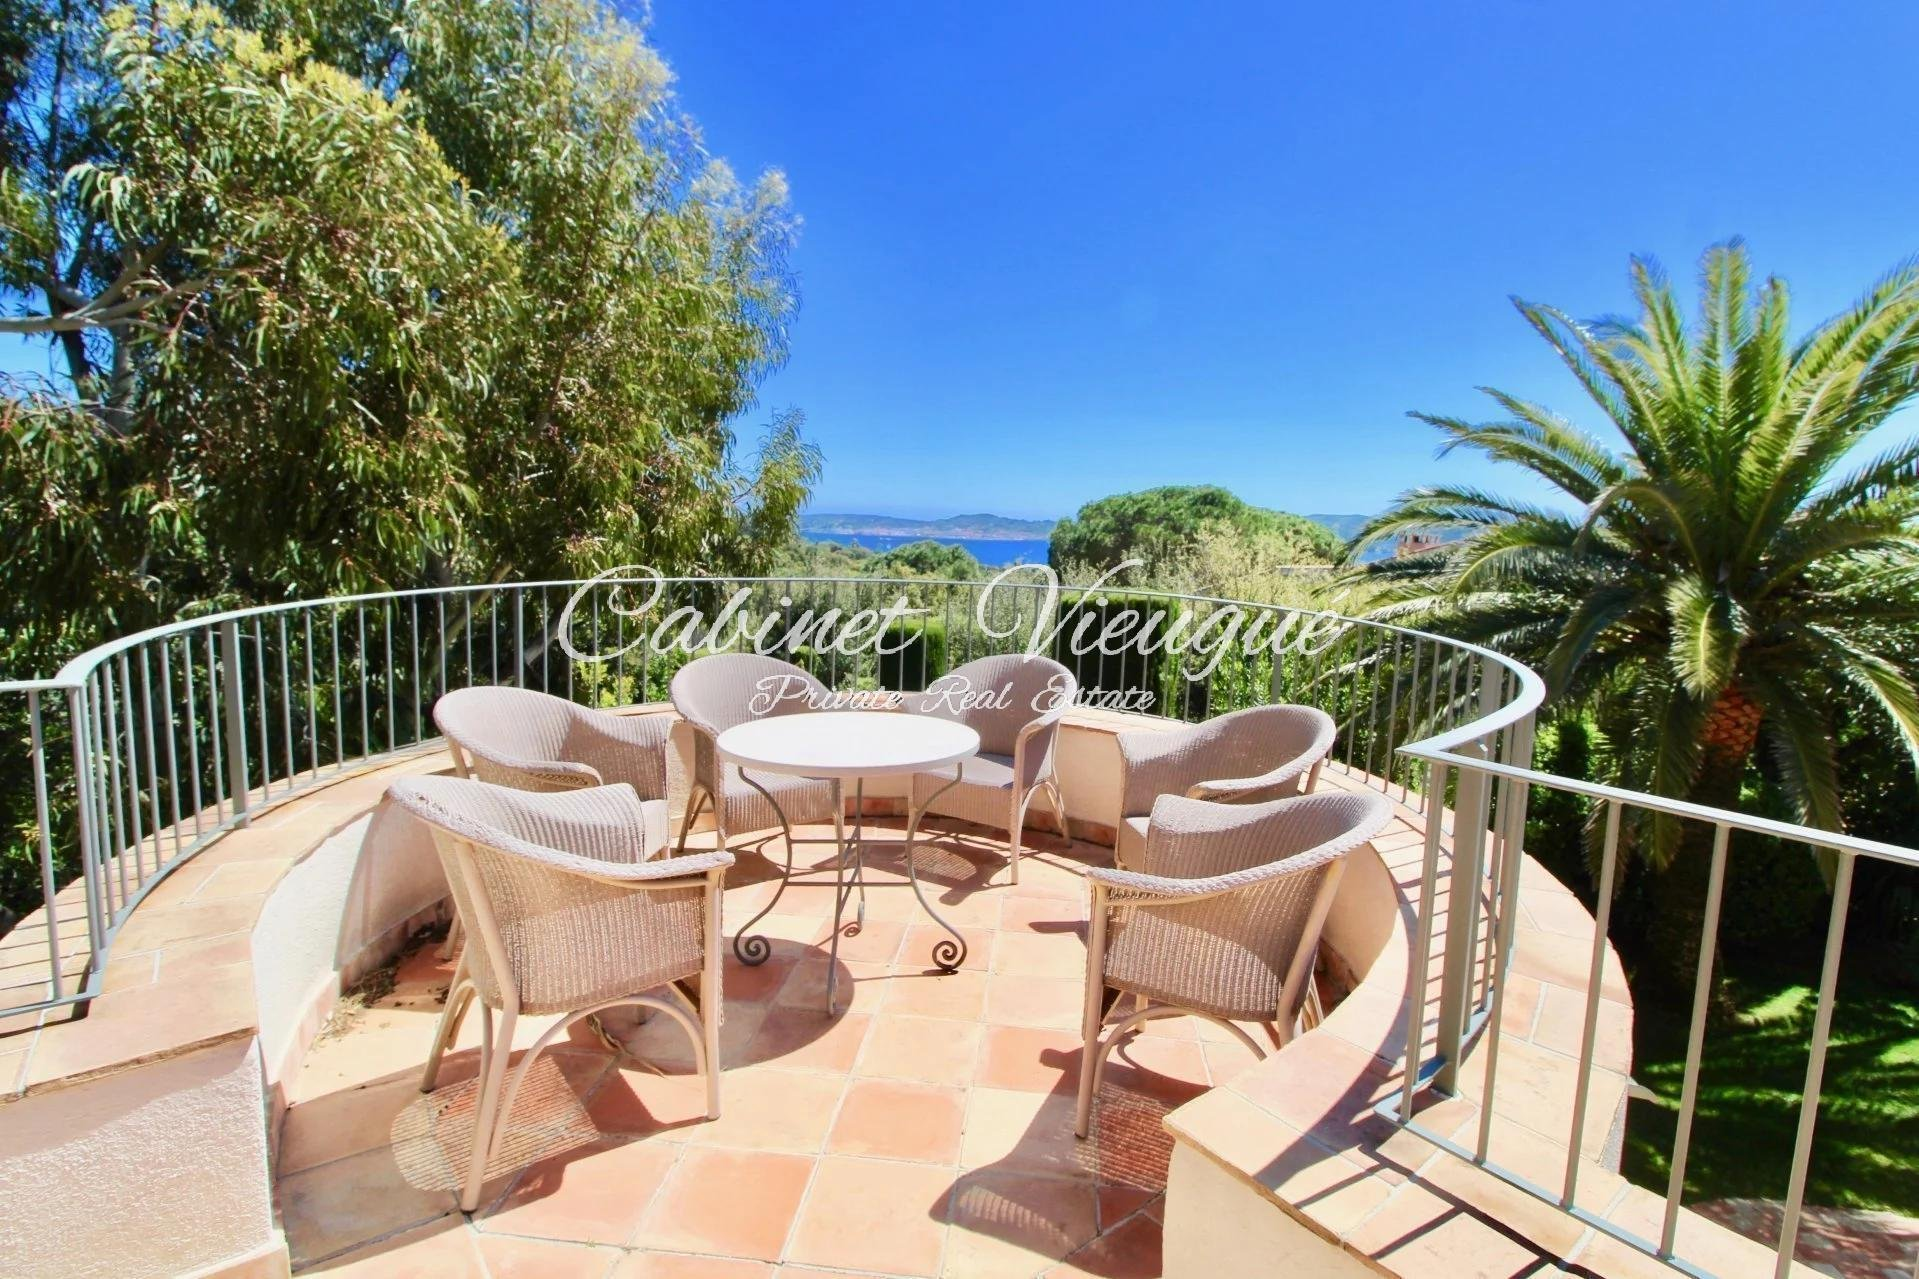 Charming Property for Sale in Beauvallon Bartole